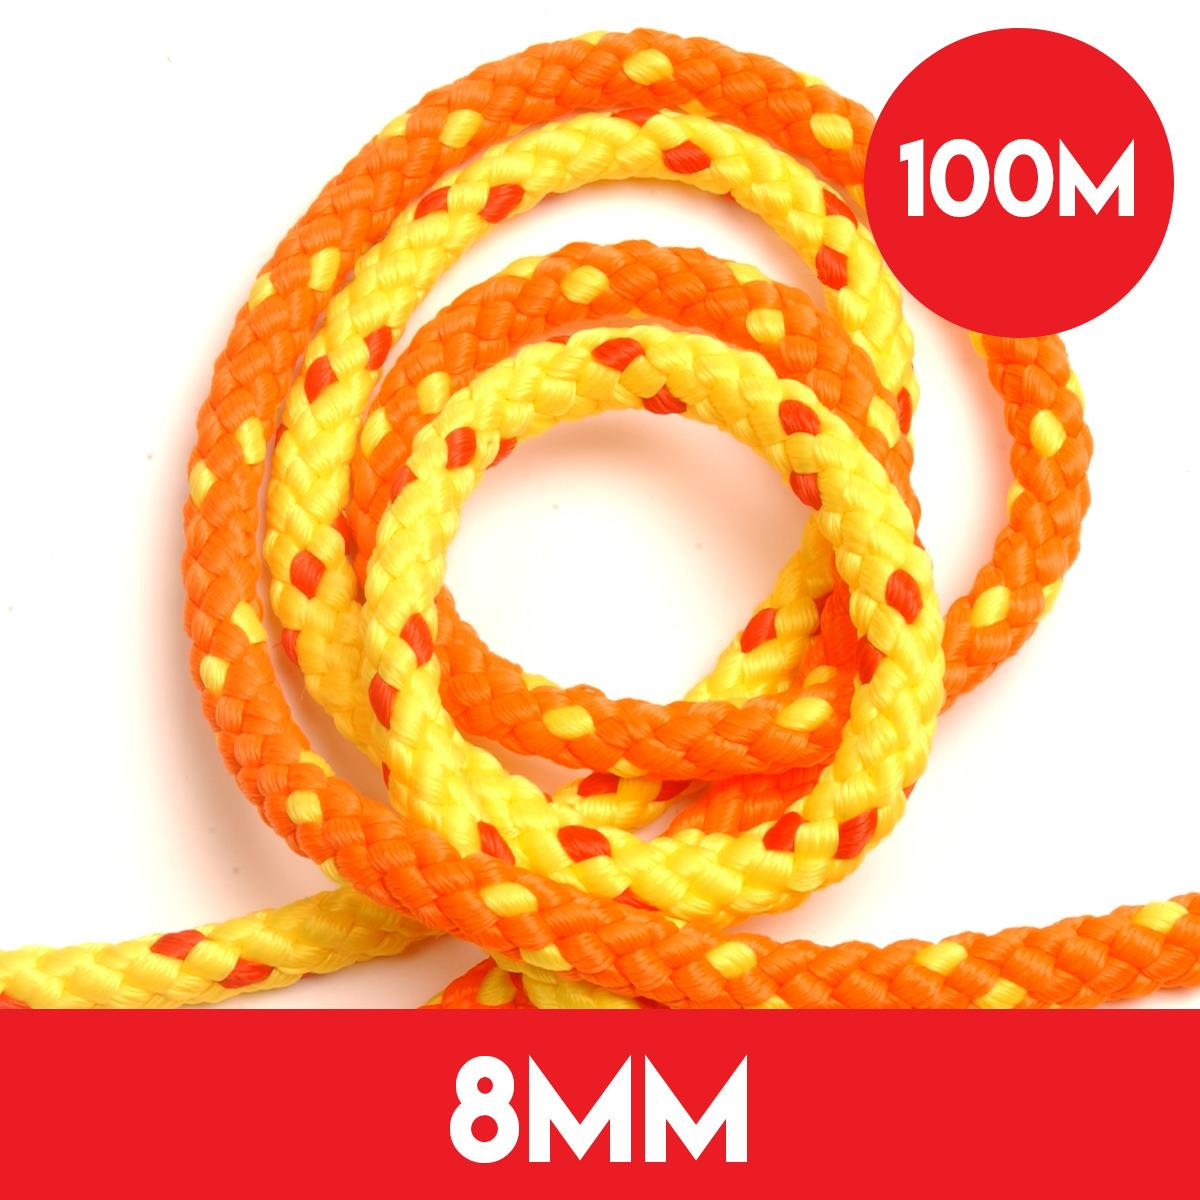 100m of 8mm Floatline Tow Rope